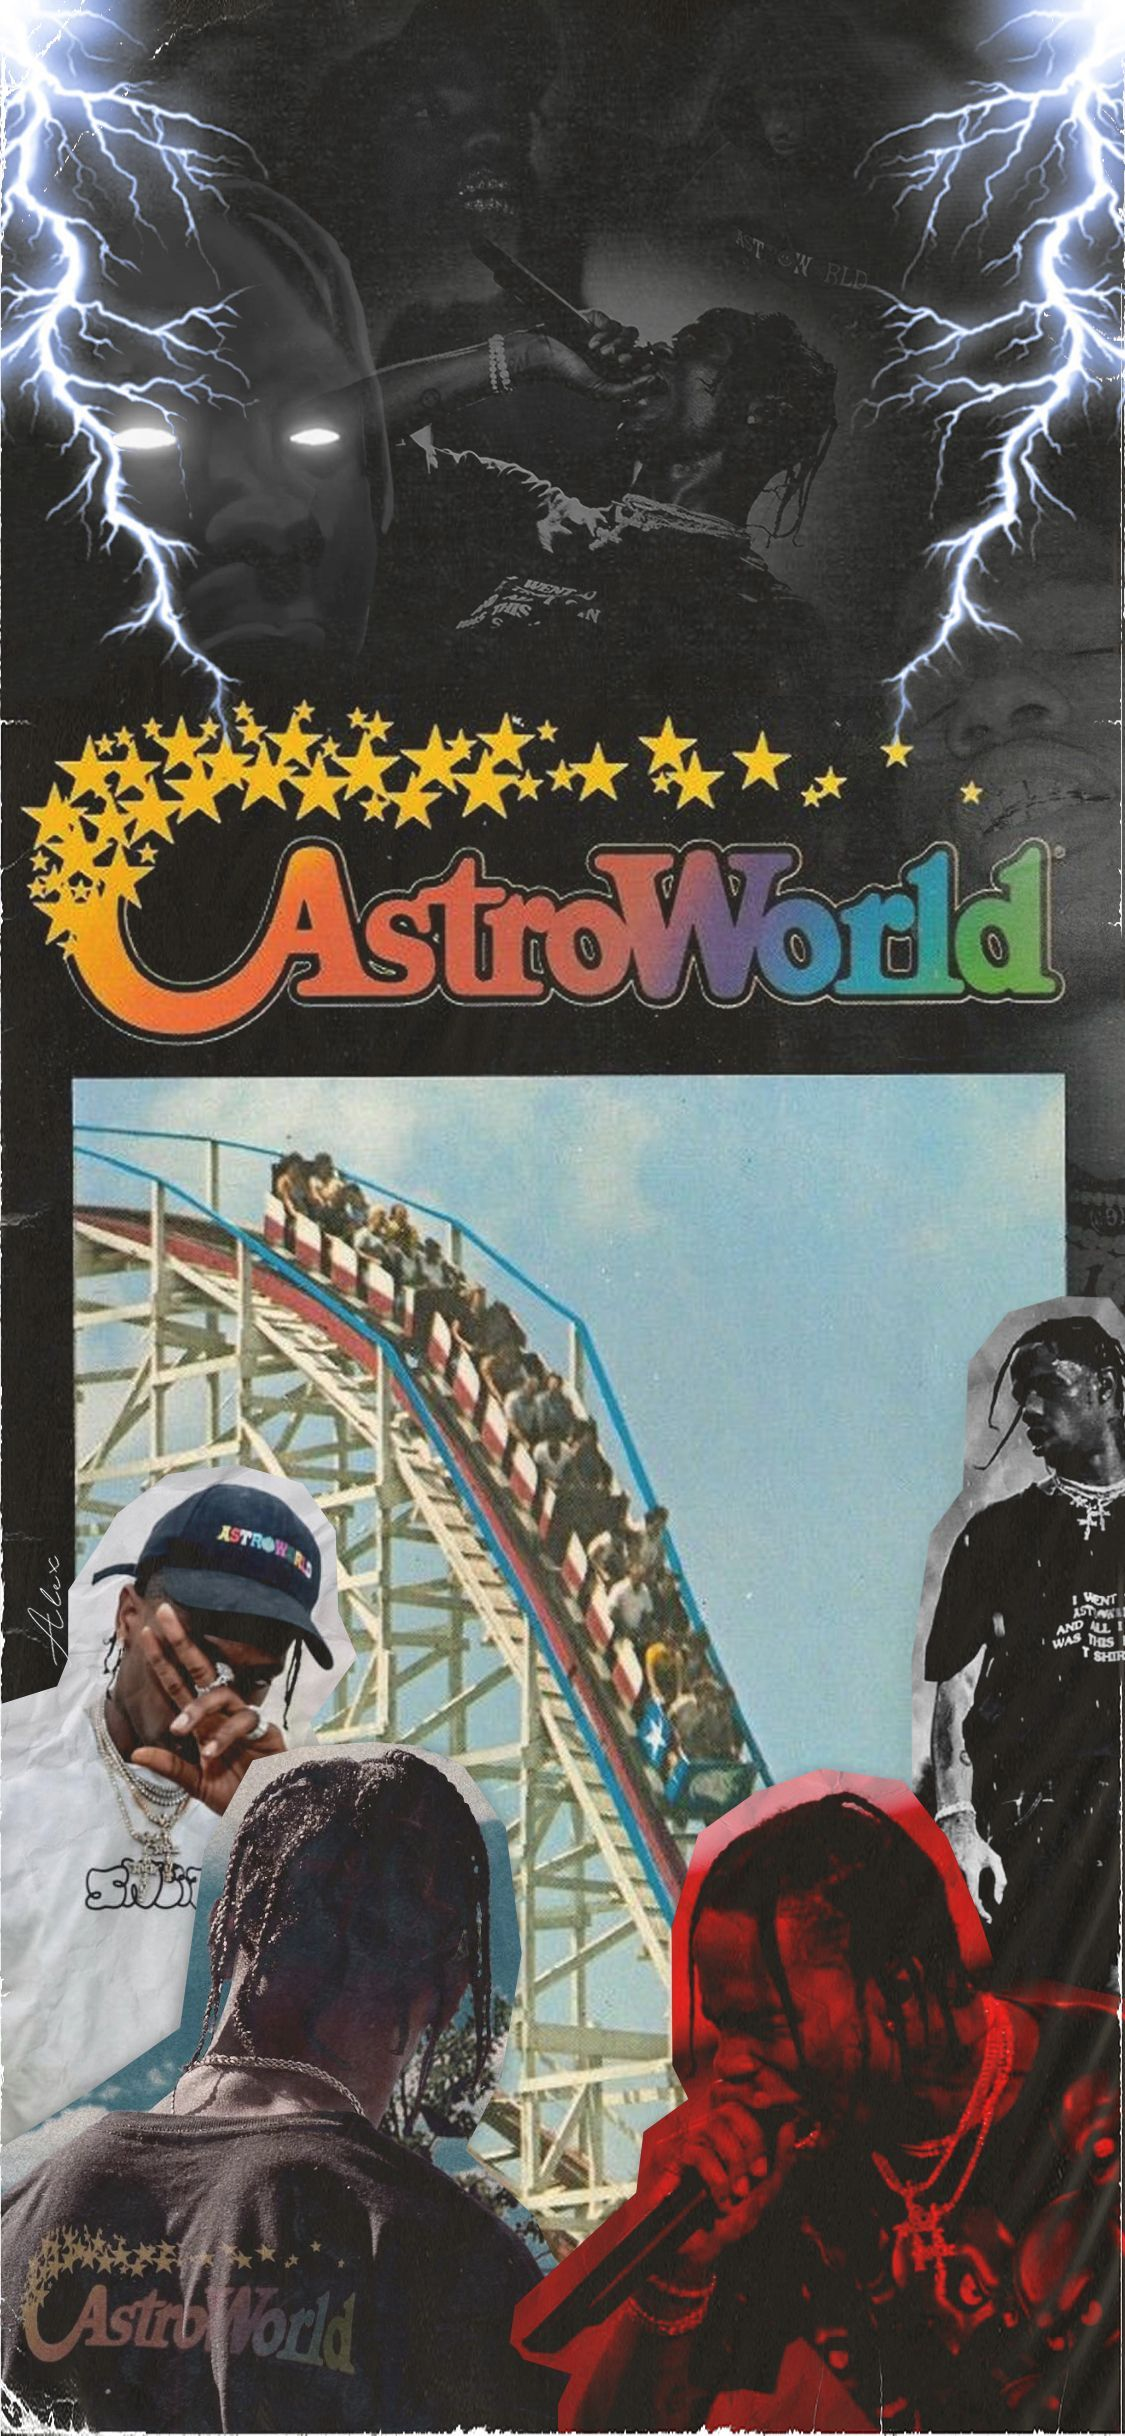 Travis Scott Astroworld Iphone Wallpaper travisscottwallpapers 1125x2436